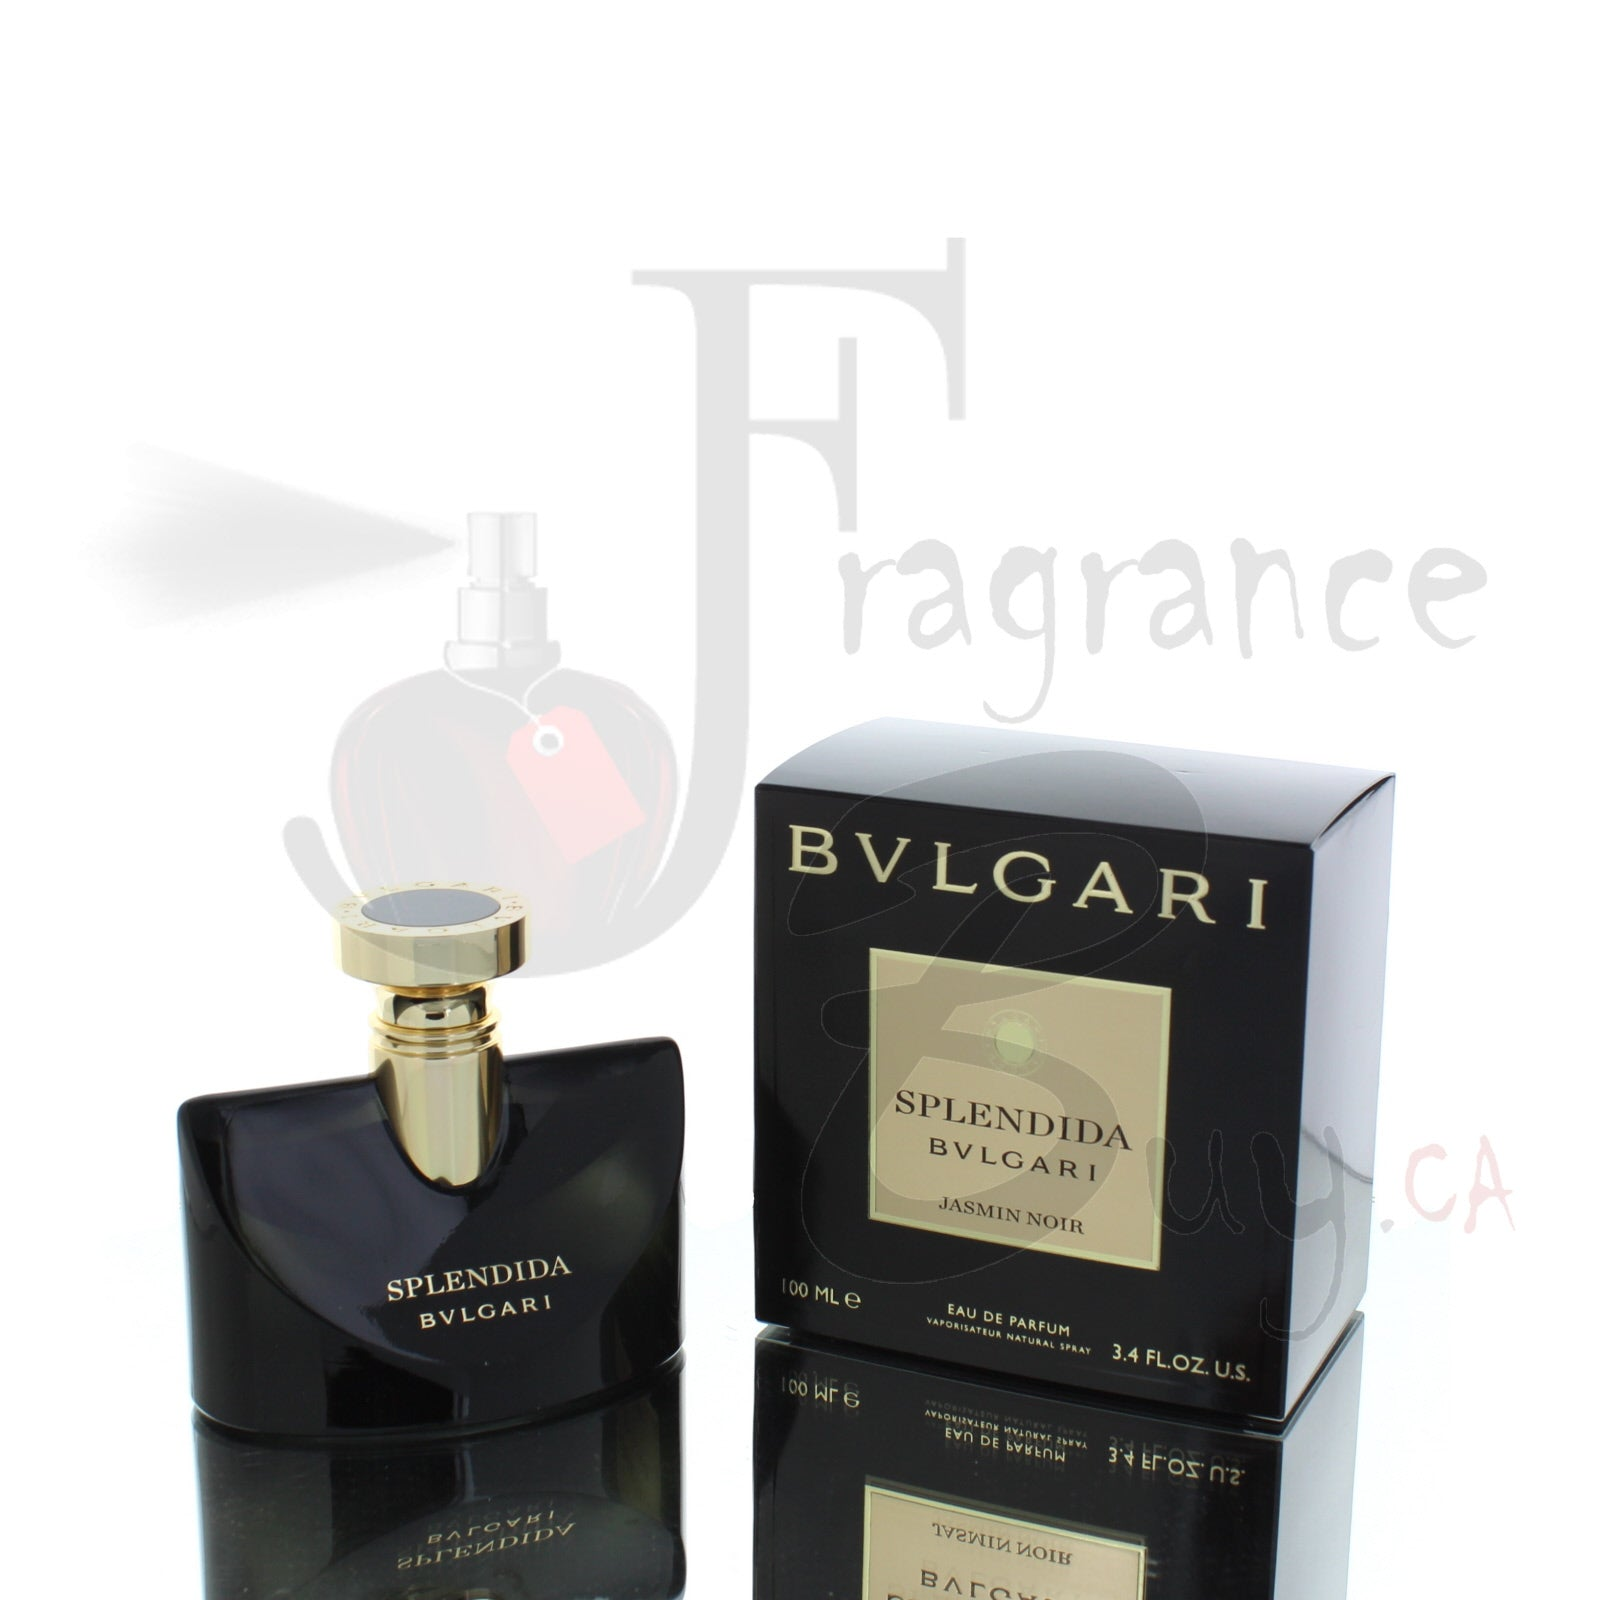 Bvlgari Splendida Jasmin Noir For Woman